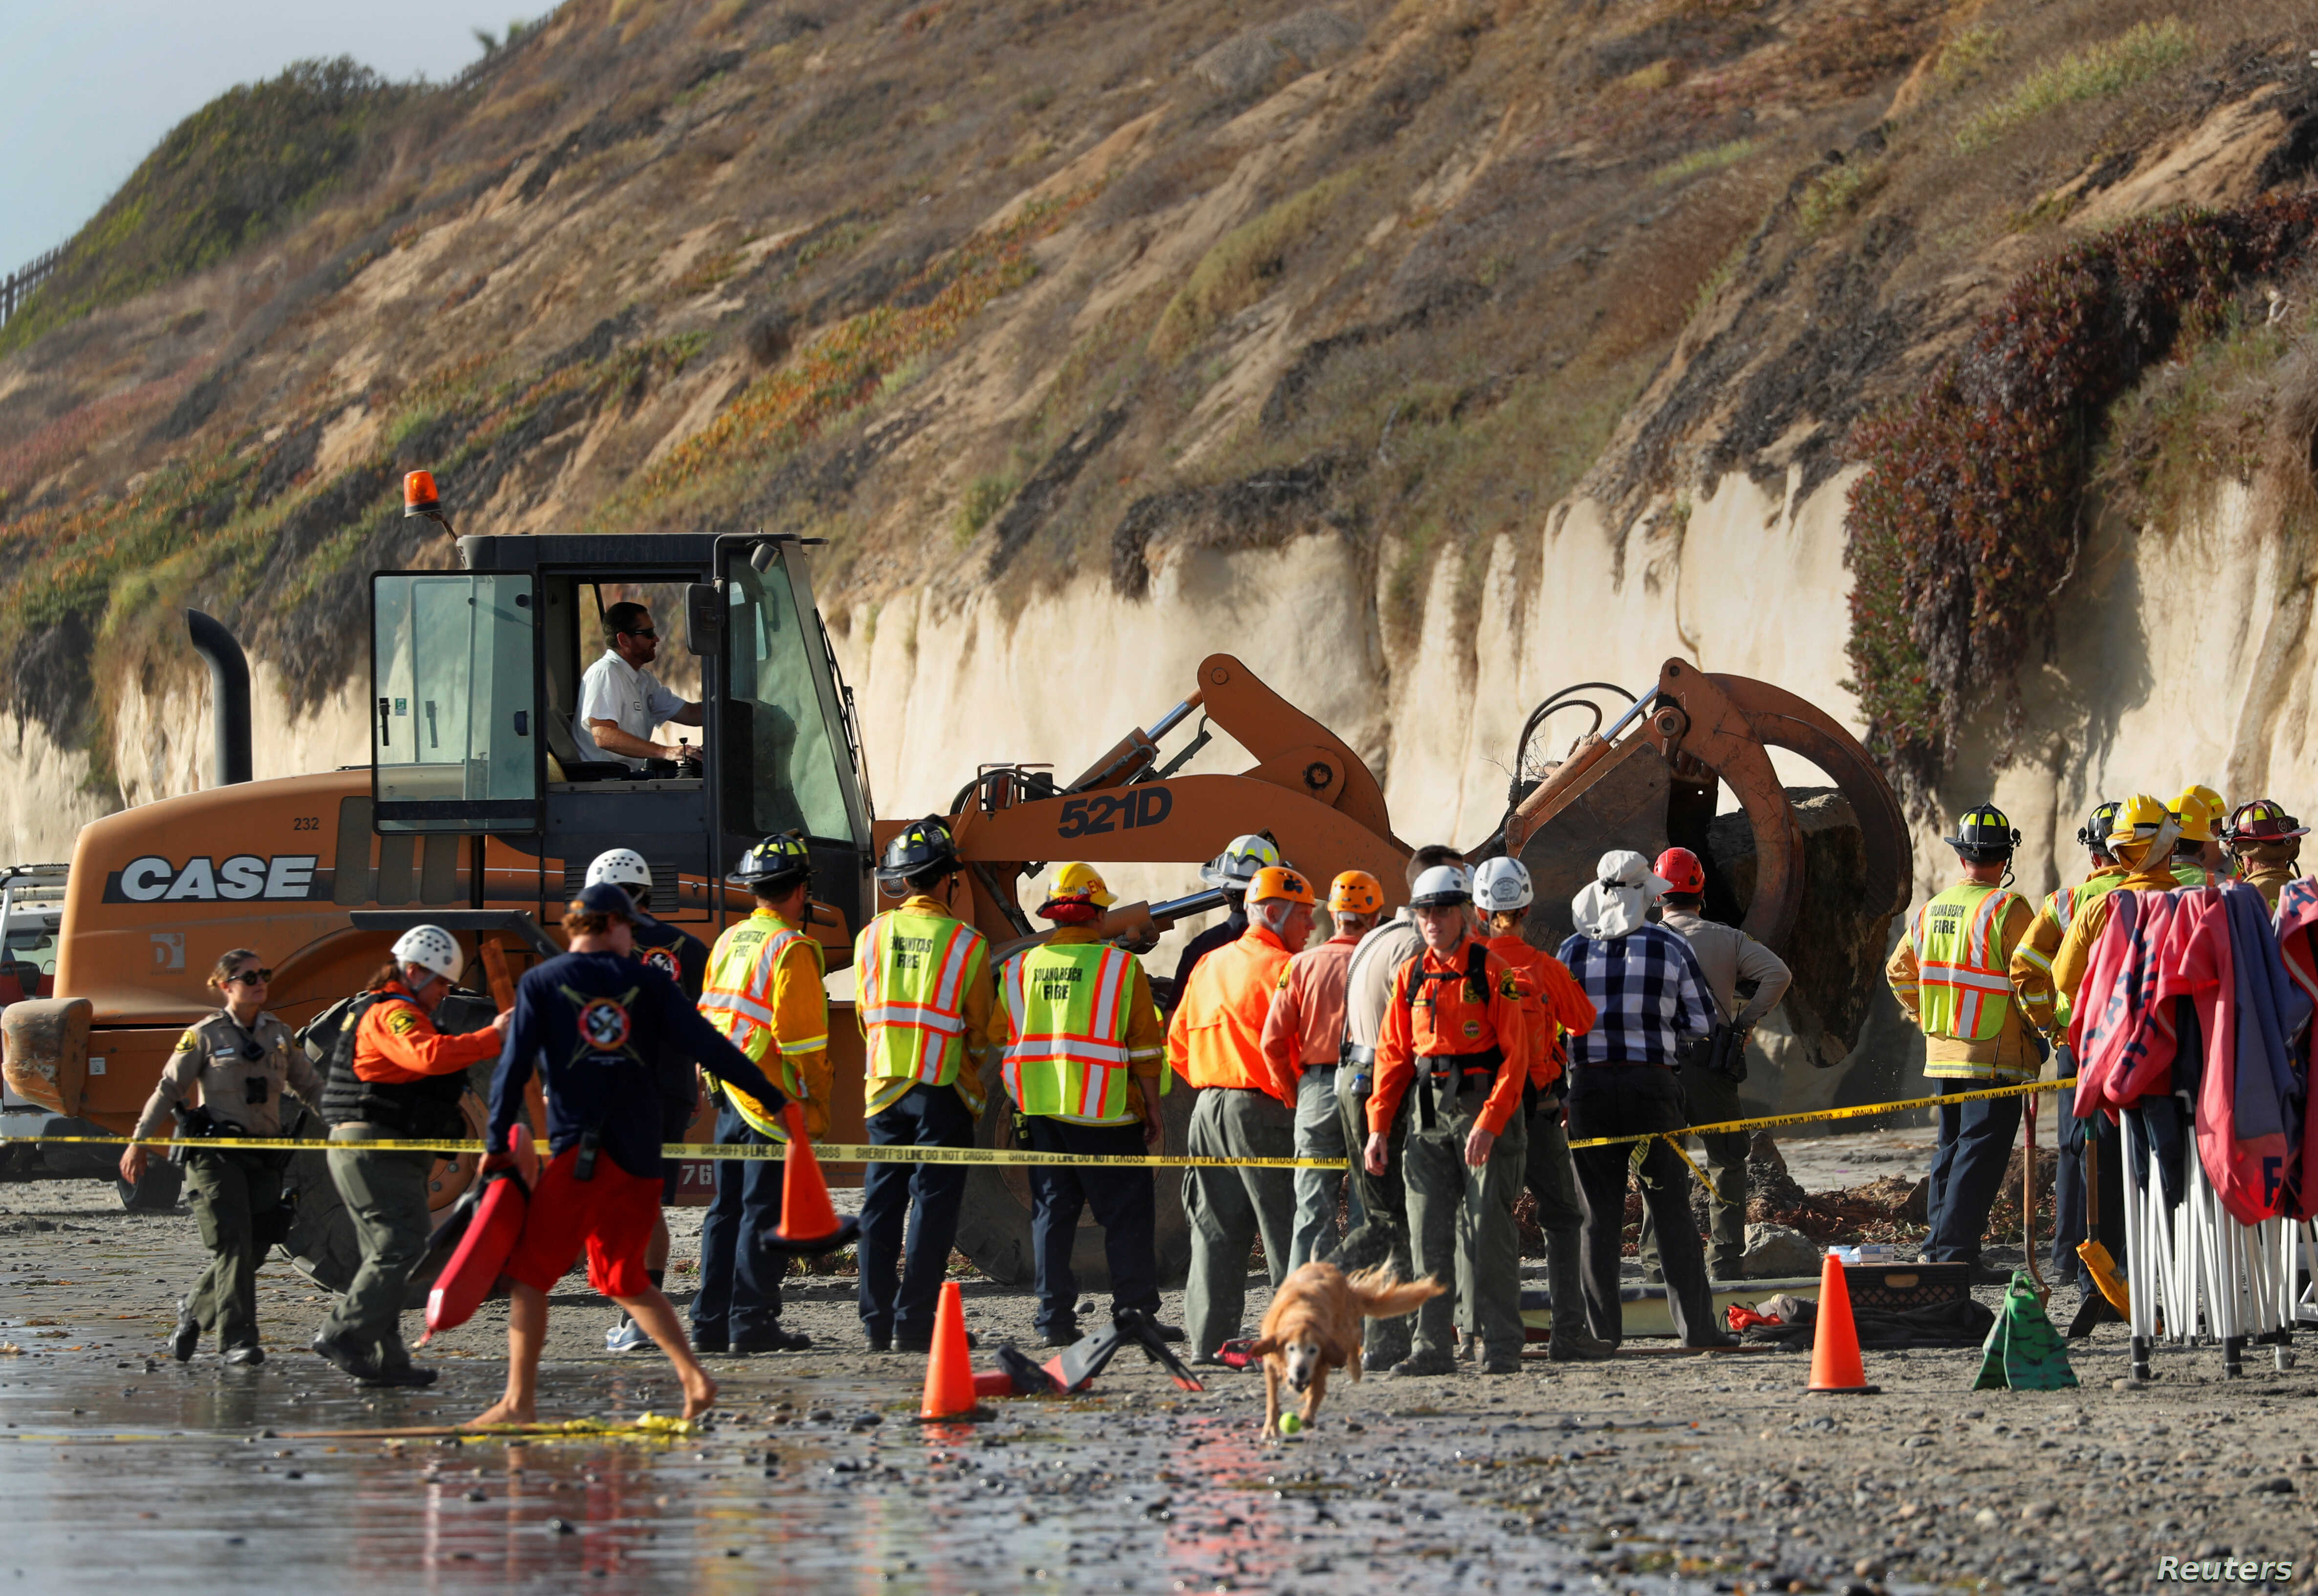 Victims in California Sea Cliff Collapse Had Gathered for